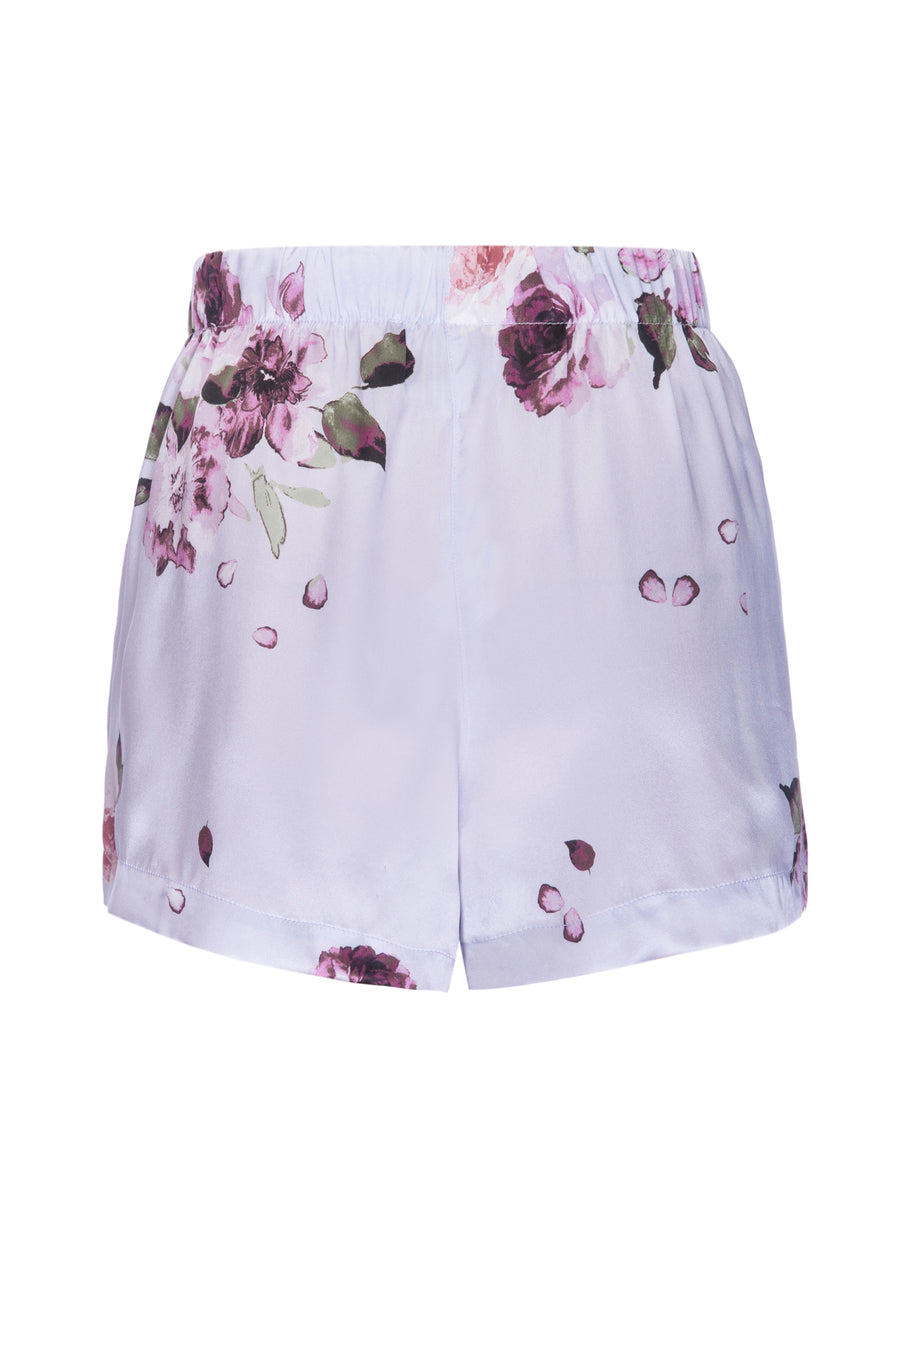 Silk Charmeuse PJ Shorts: Light Blue Floral Print